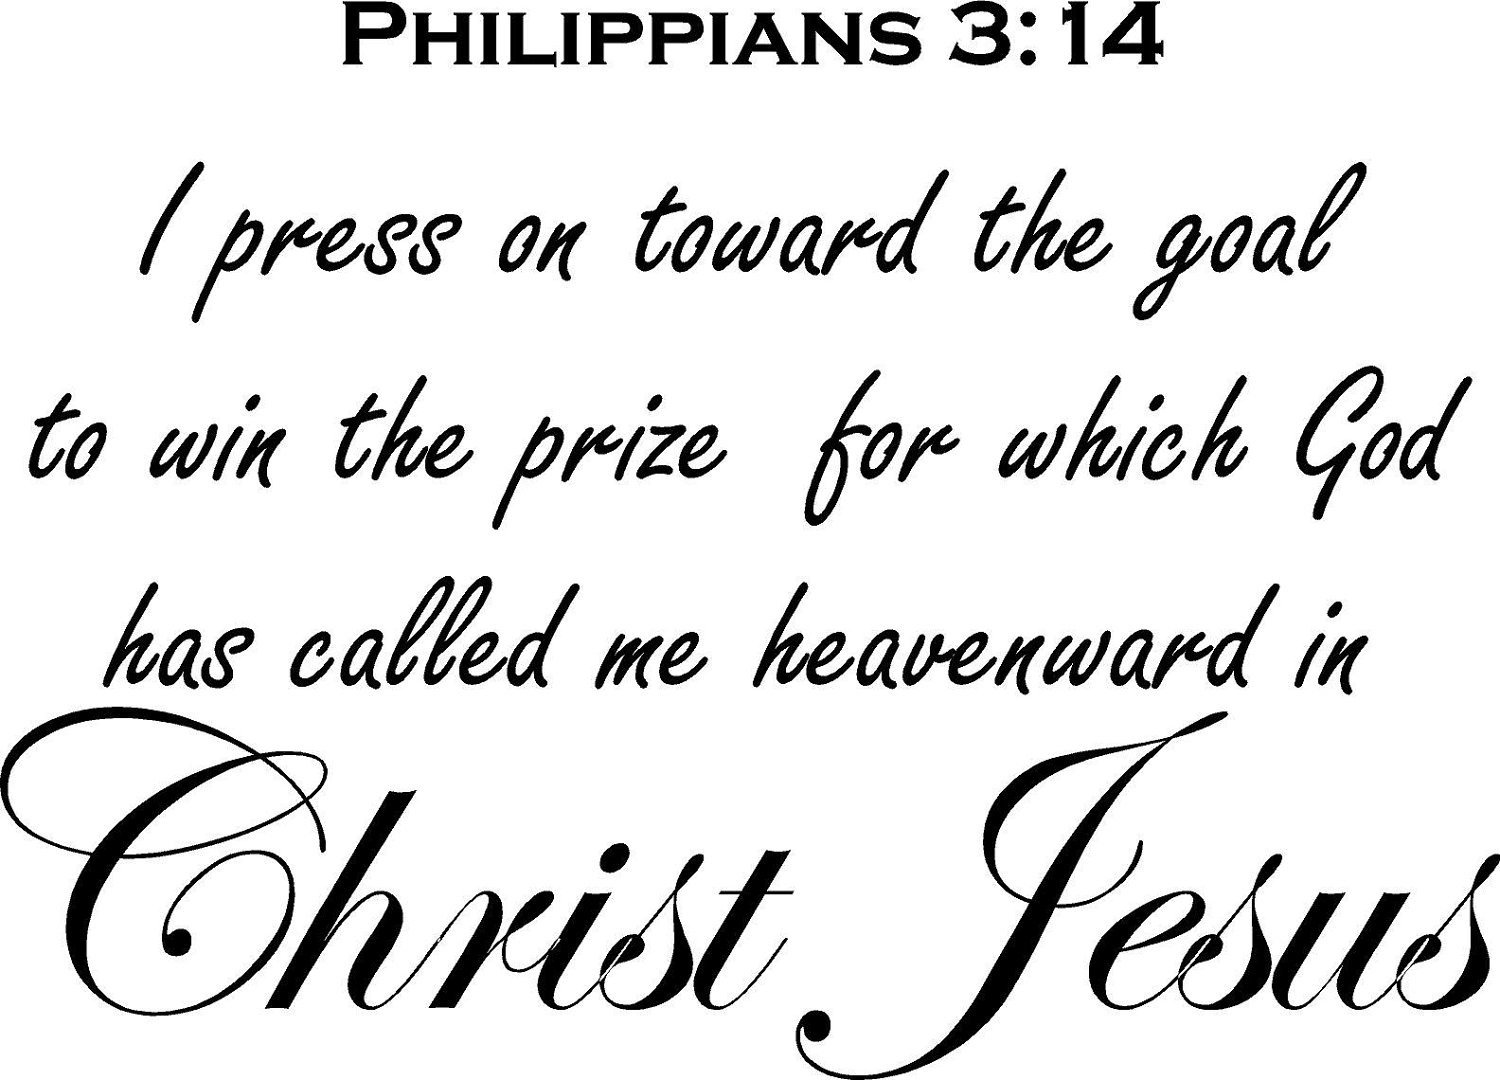 Relationship Bible Quotes Today's Bible Verse  Philippians 314  News And Views